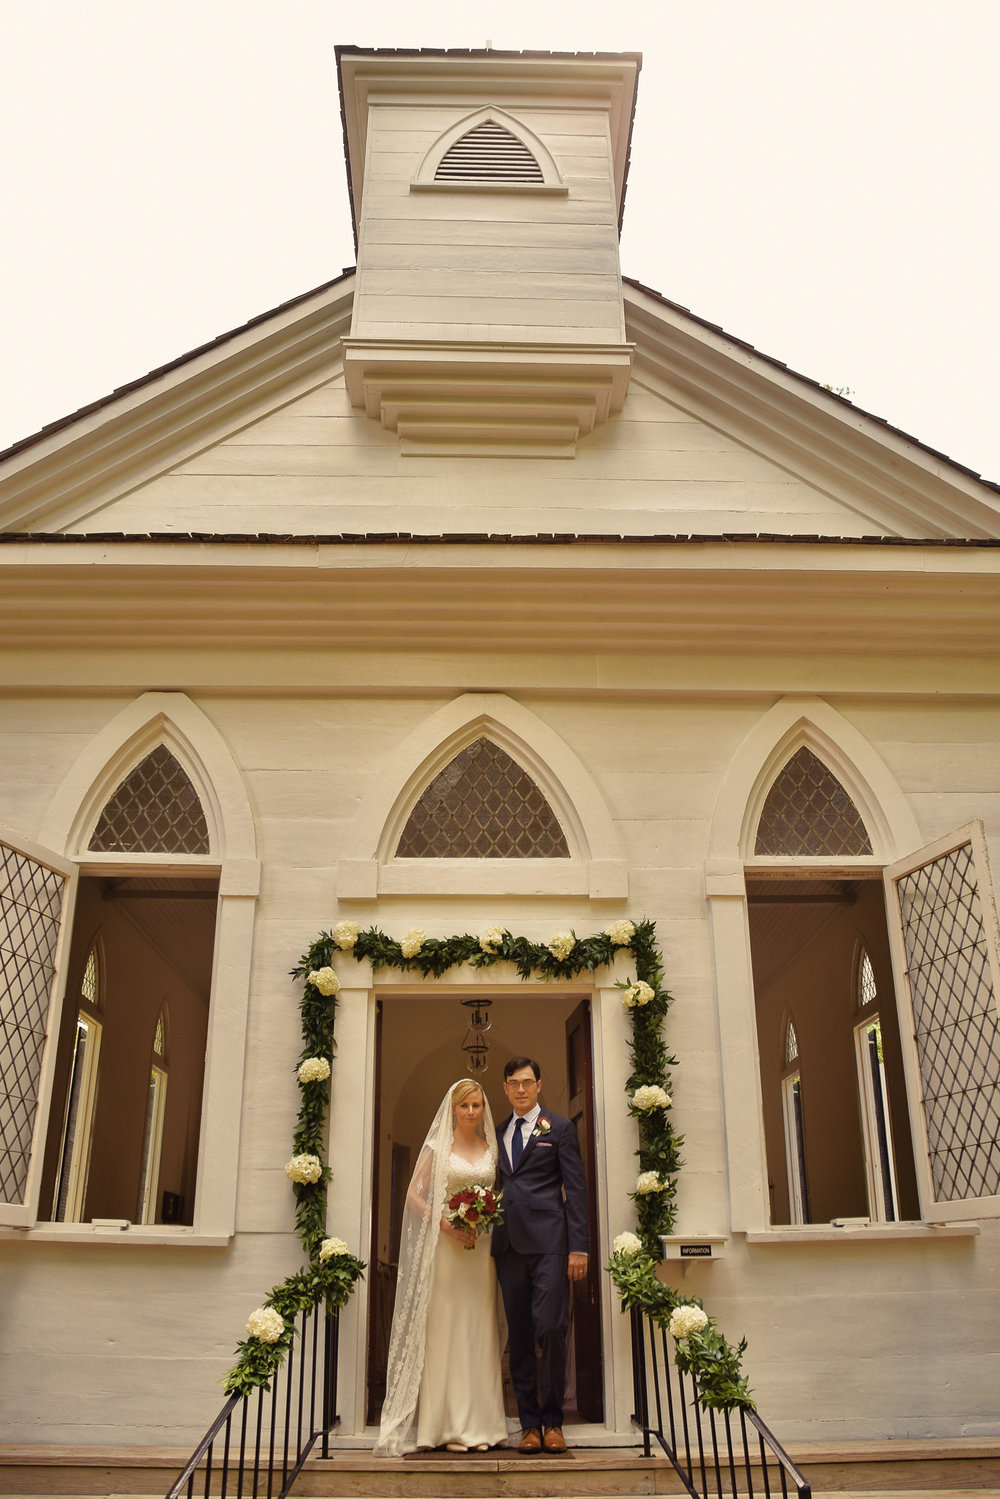 - Bride and groom posing for a photo outside the Lebanon Chapel in Airlie Gardens, Wilmington, NC. Billy Beach Photography.